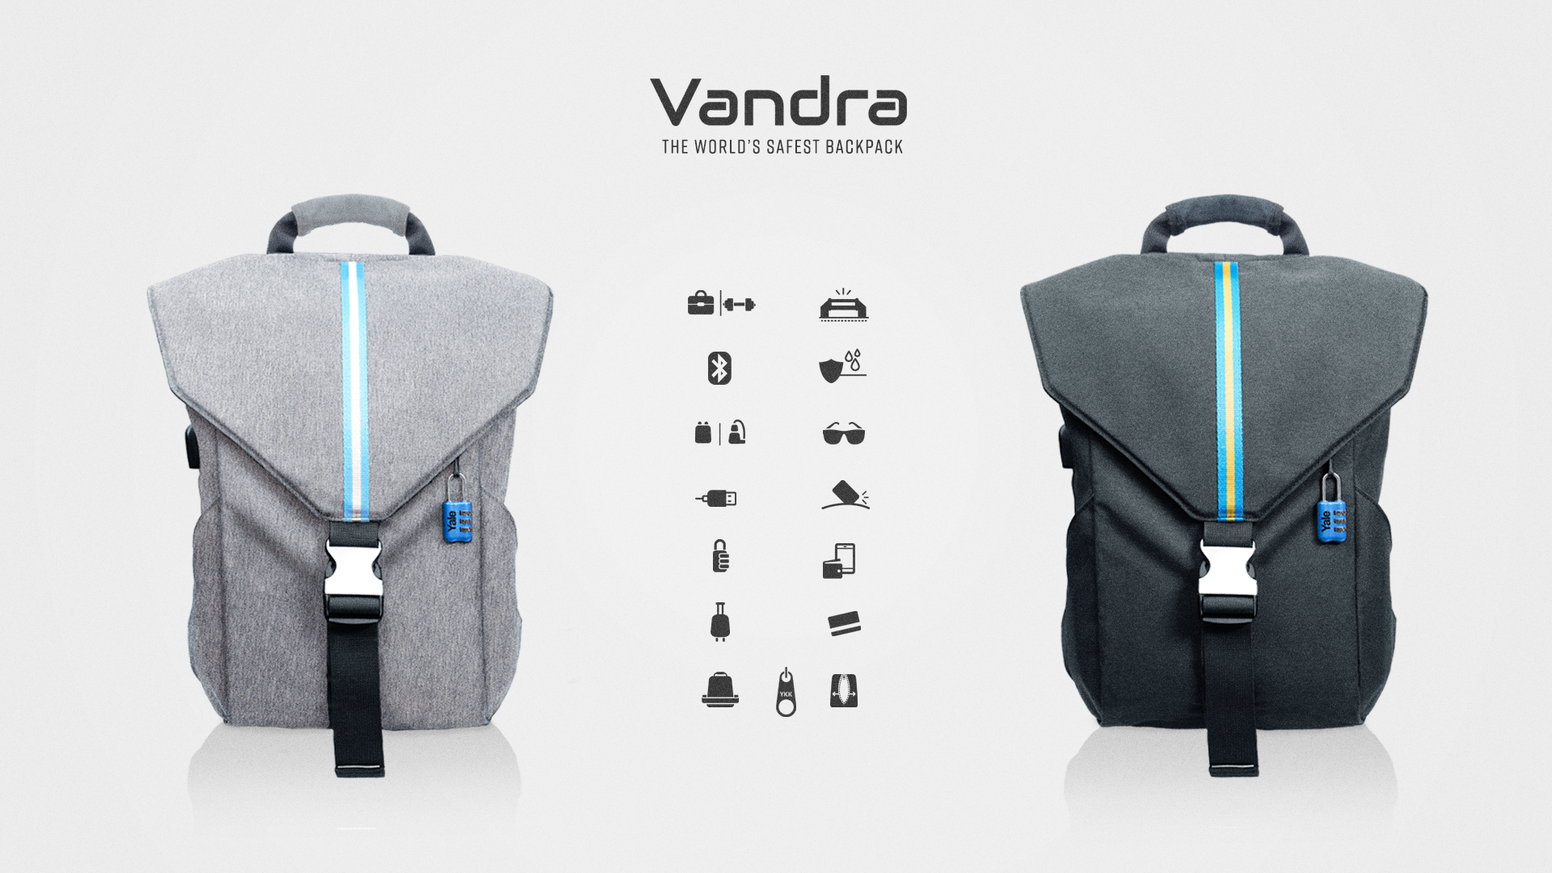 2a03d5d4638d9f Vandra | The world's safest backpack with 15 smart features to protect and  organize your belongings